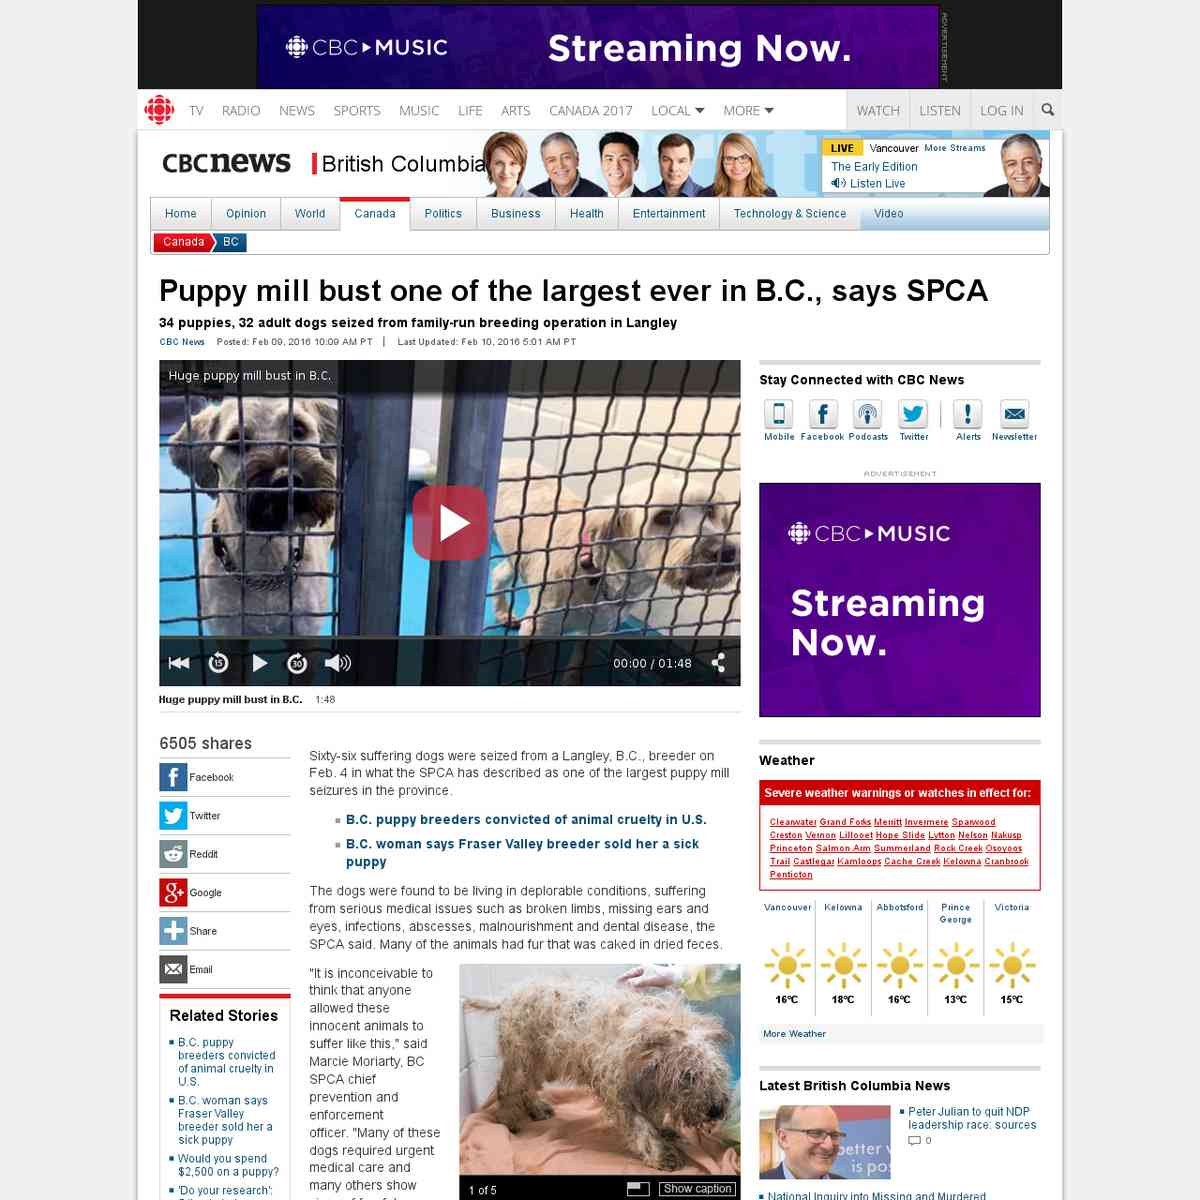 Puppy mill bust - largest ever in B.C.